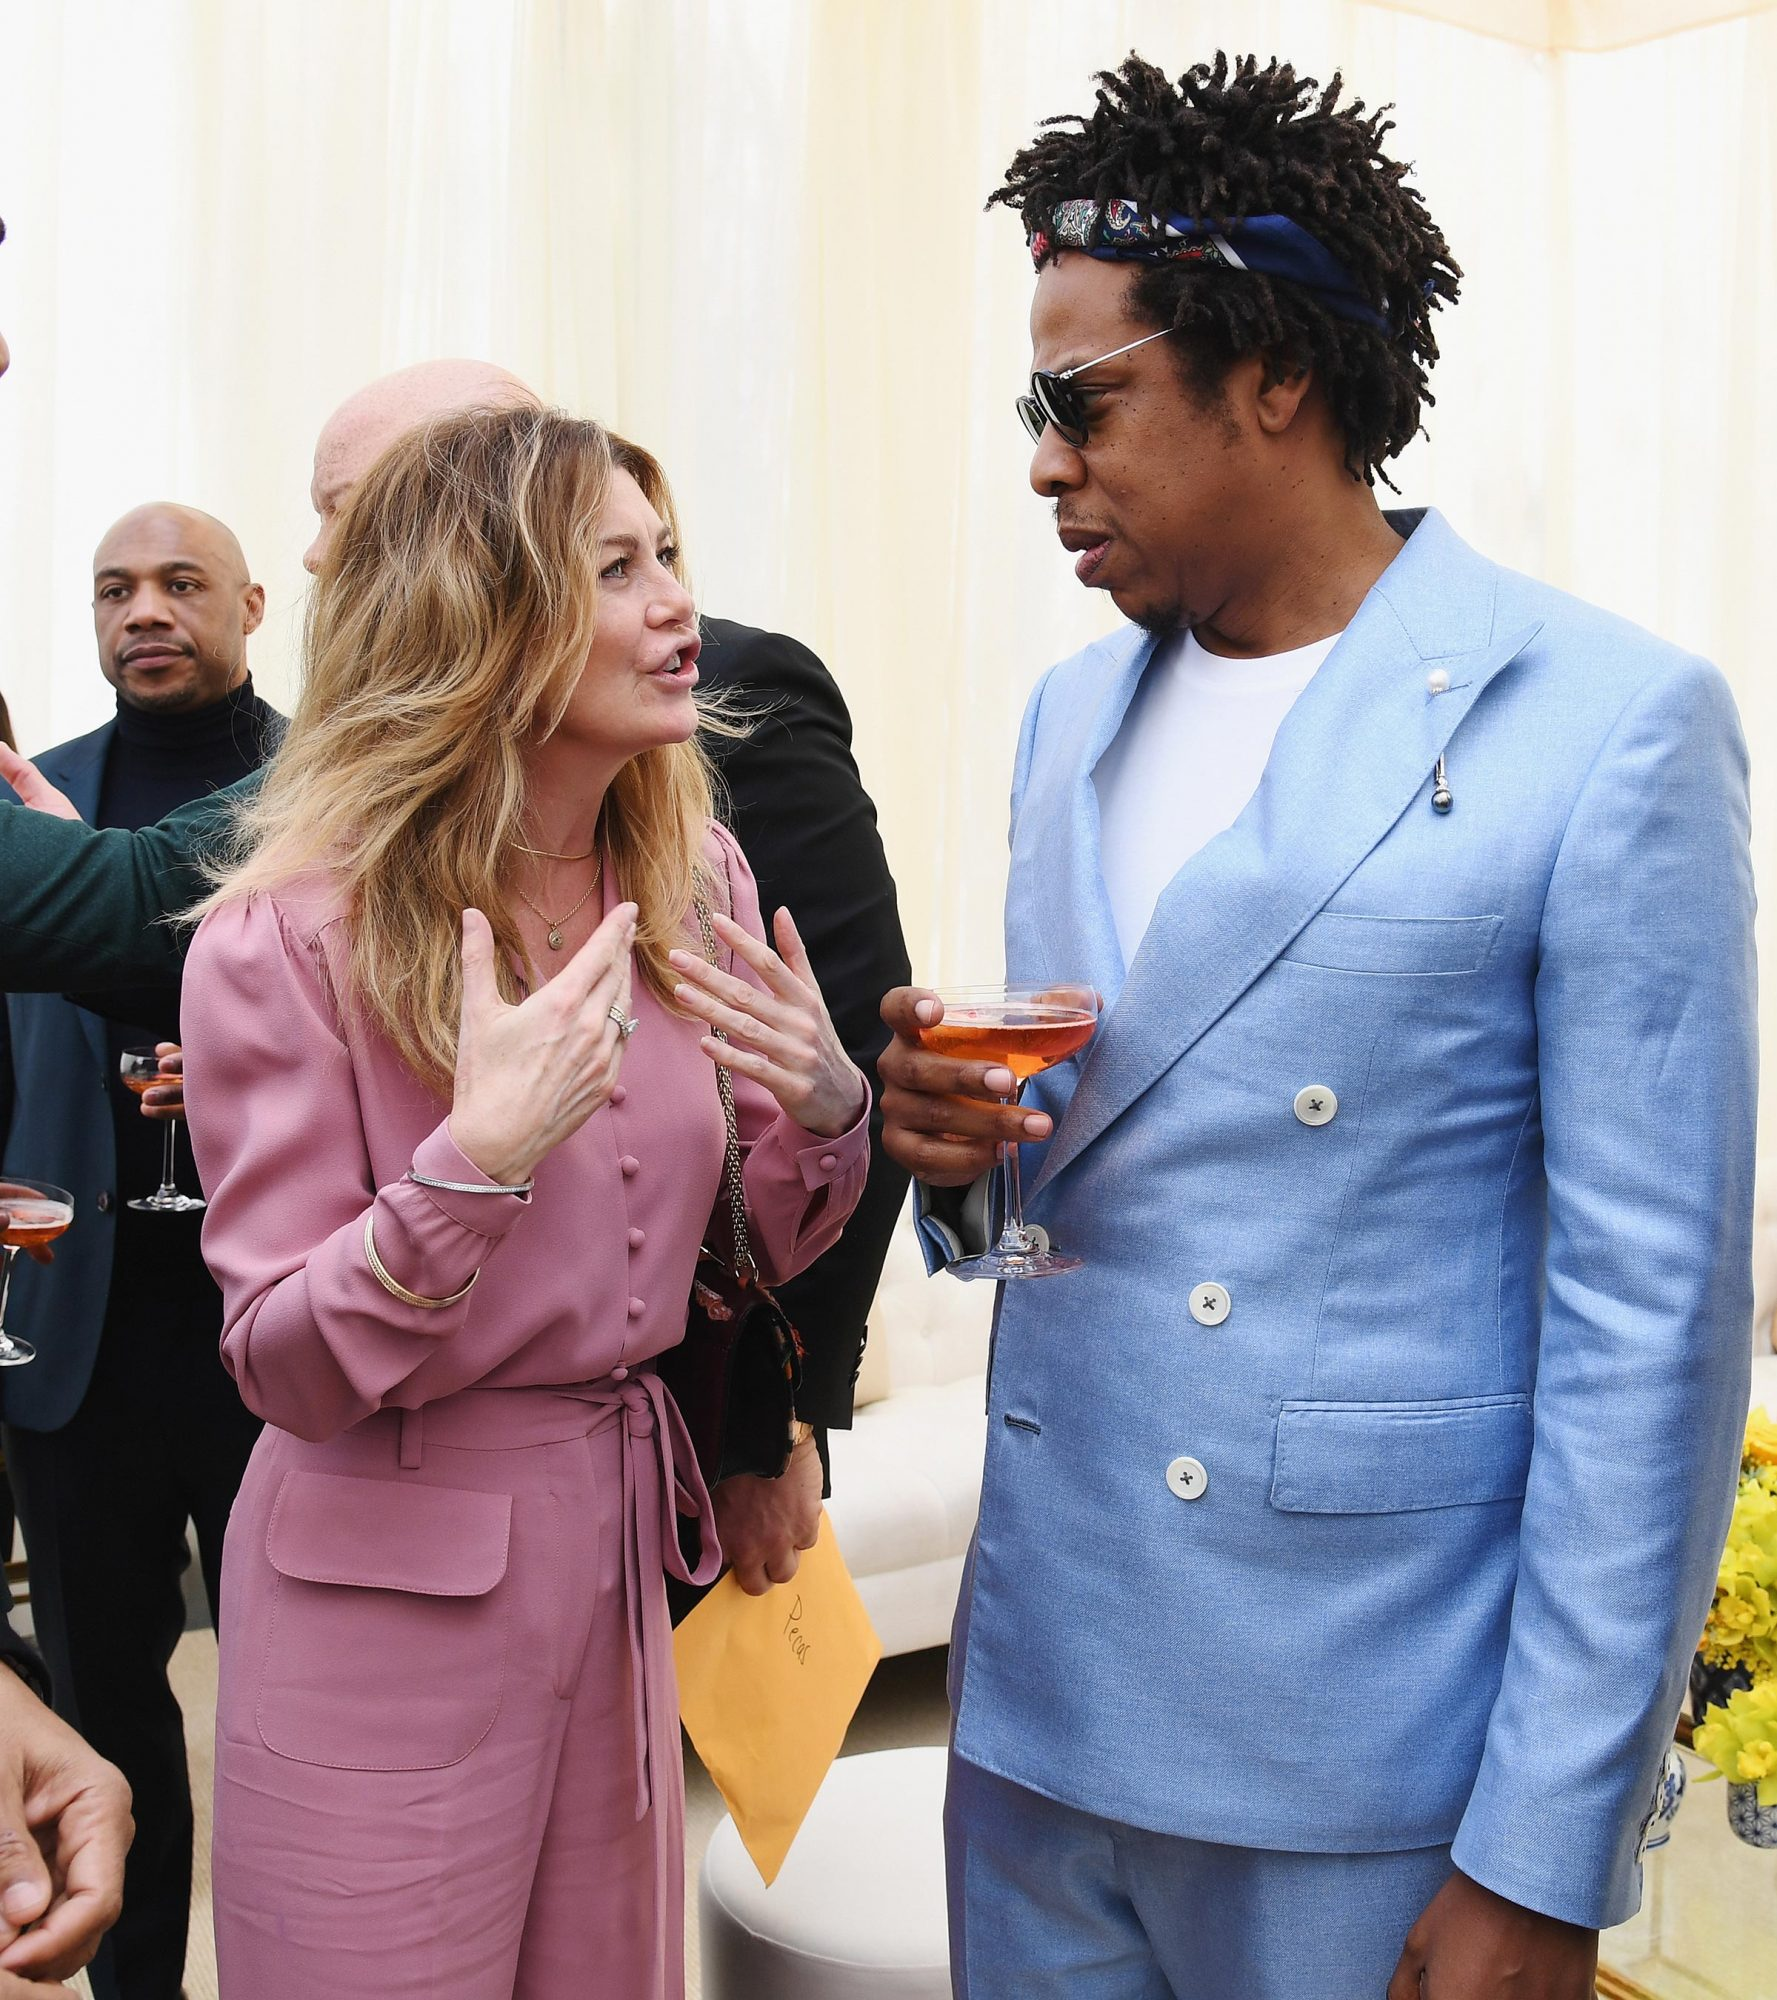 Grammys 2019 Ellen Pomeo Chats With Jay Z In Viral Photo People Com